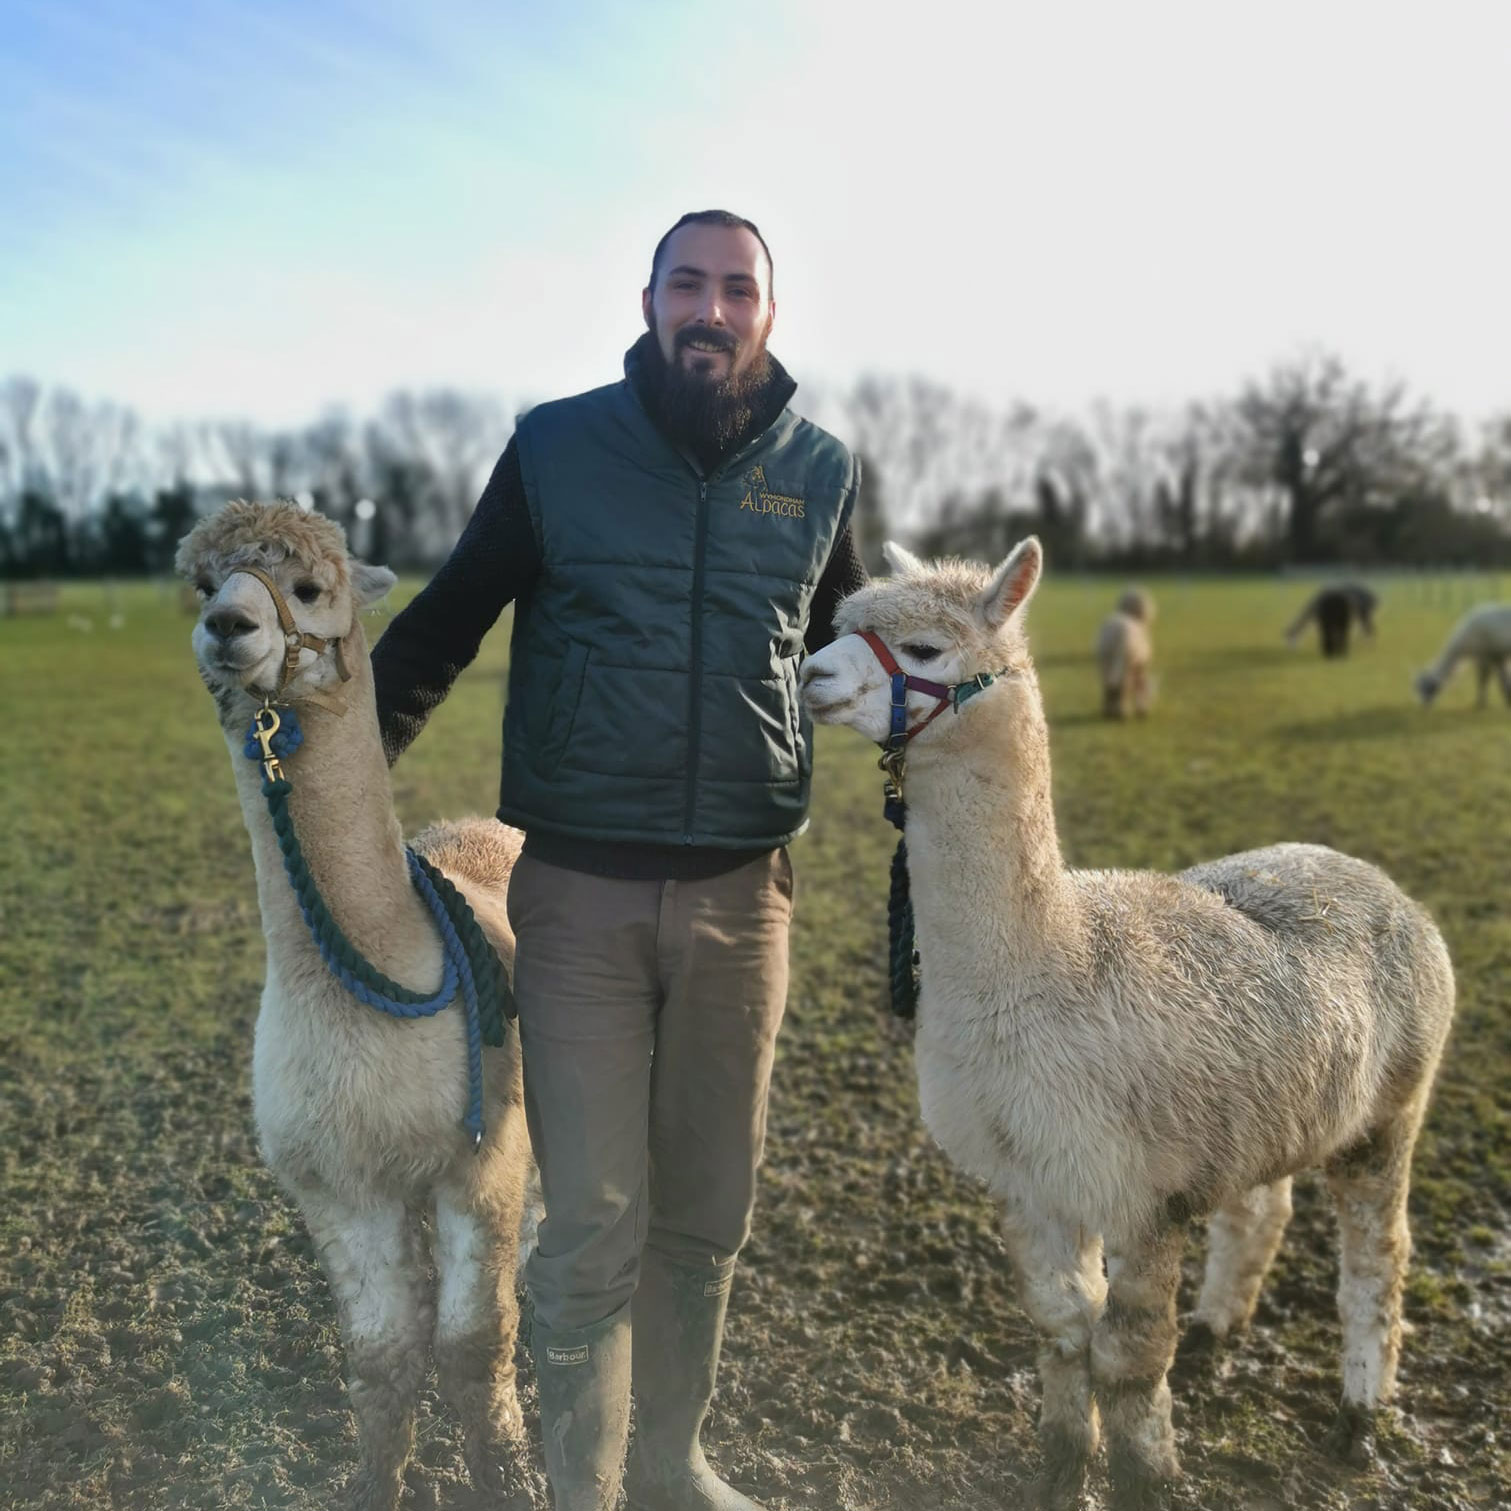 Man standing with two alpacas